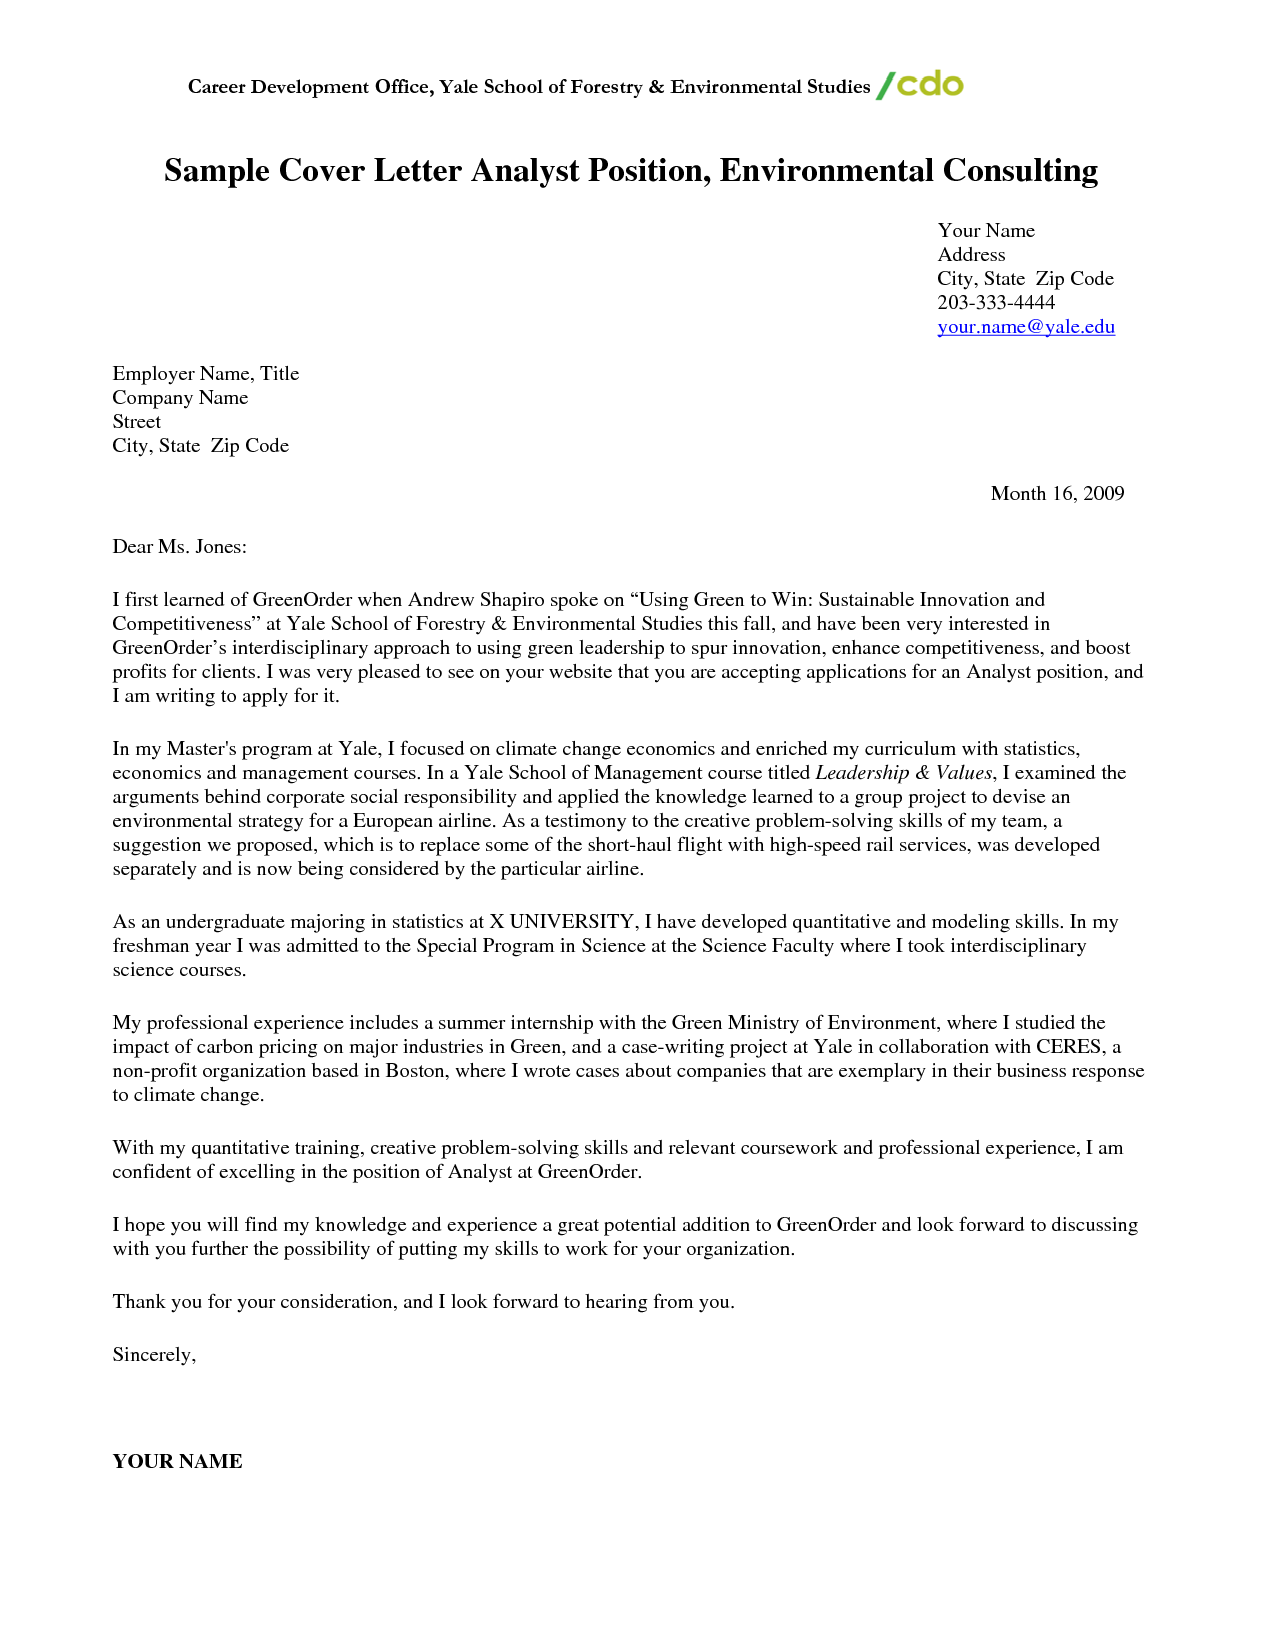 Consulting Cover Letter Sample Cover Letter Sample Cover Letter Cover Letter Template